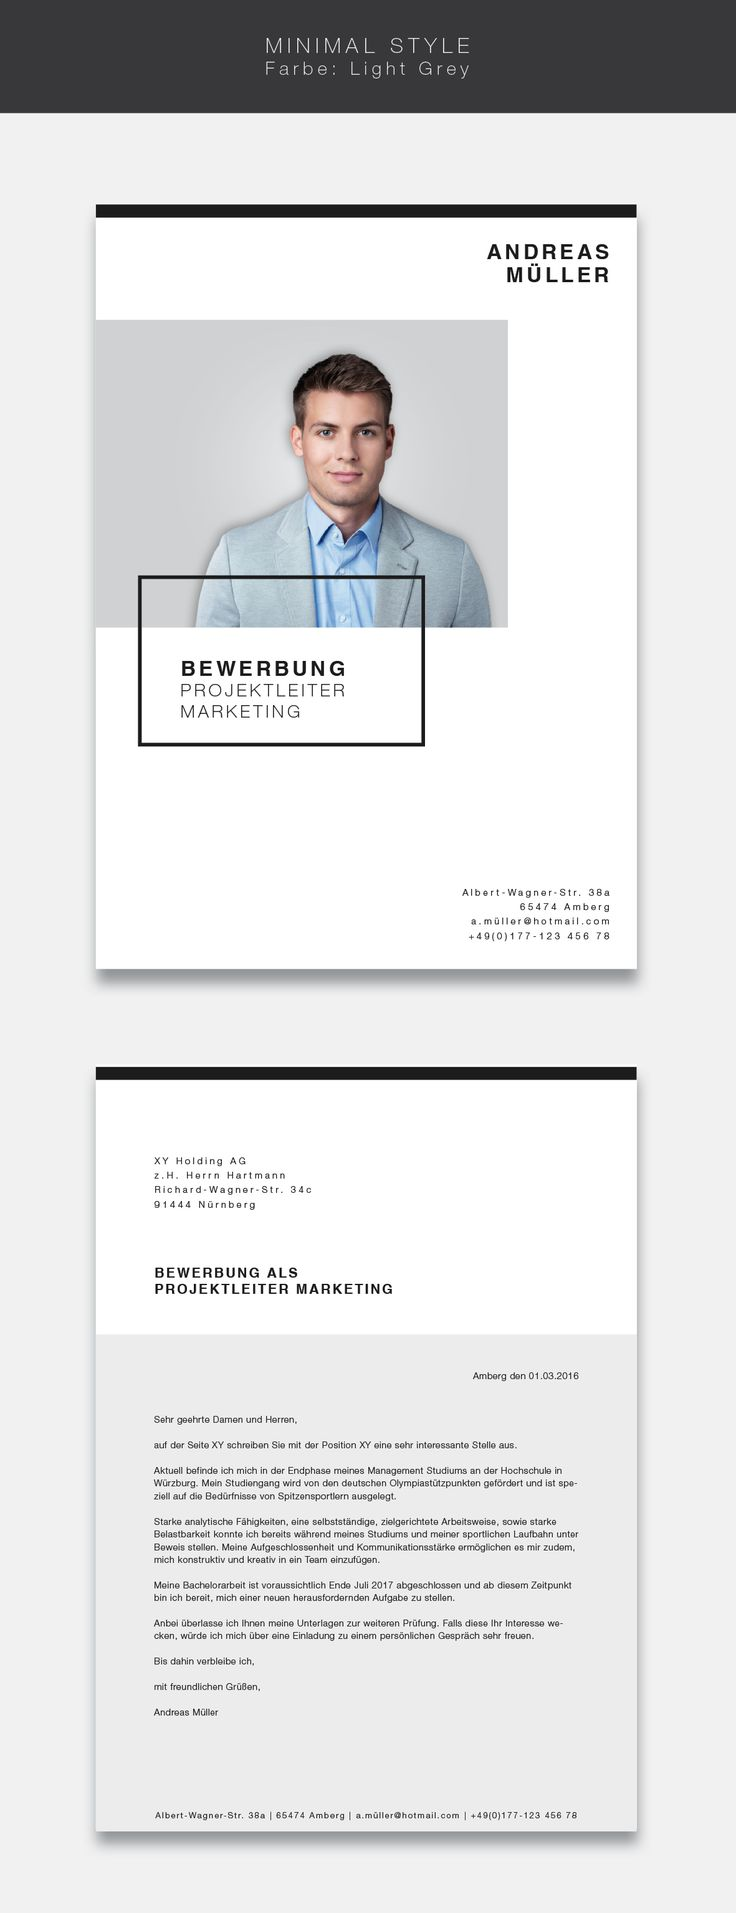 16 best Bewerbung images on Pinterest | Resume design, Resume and ...